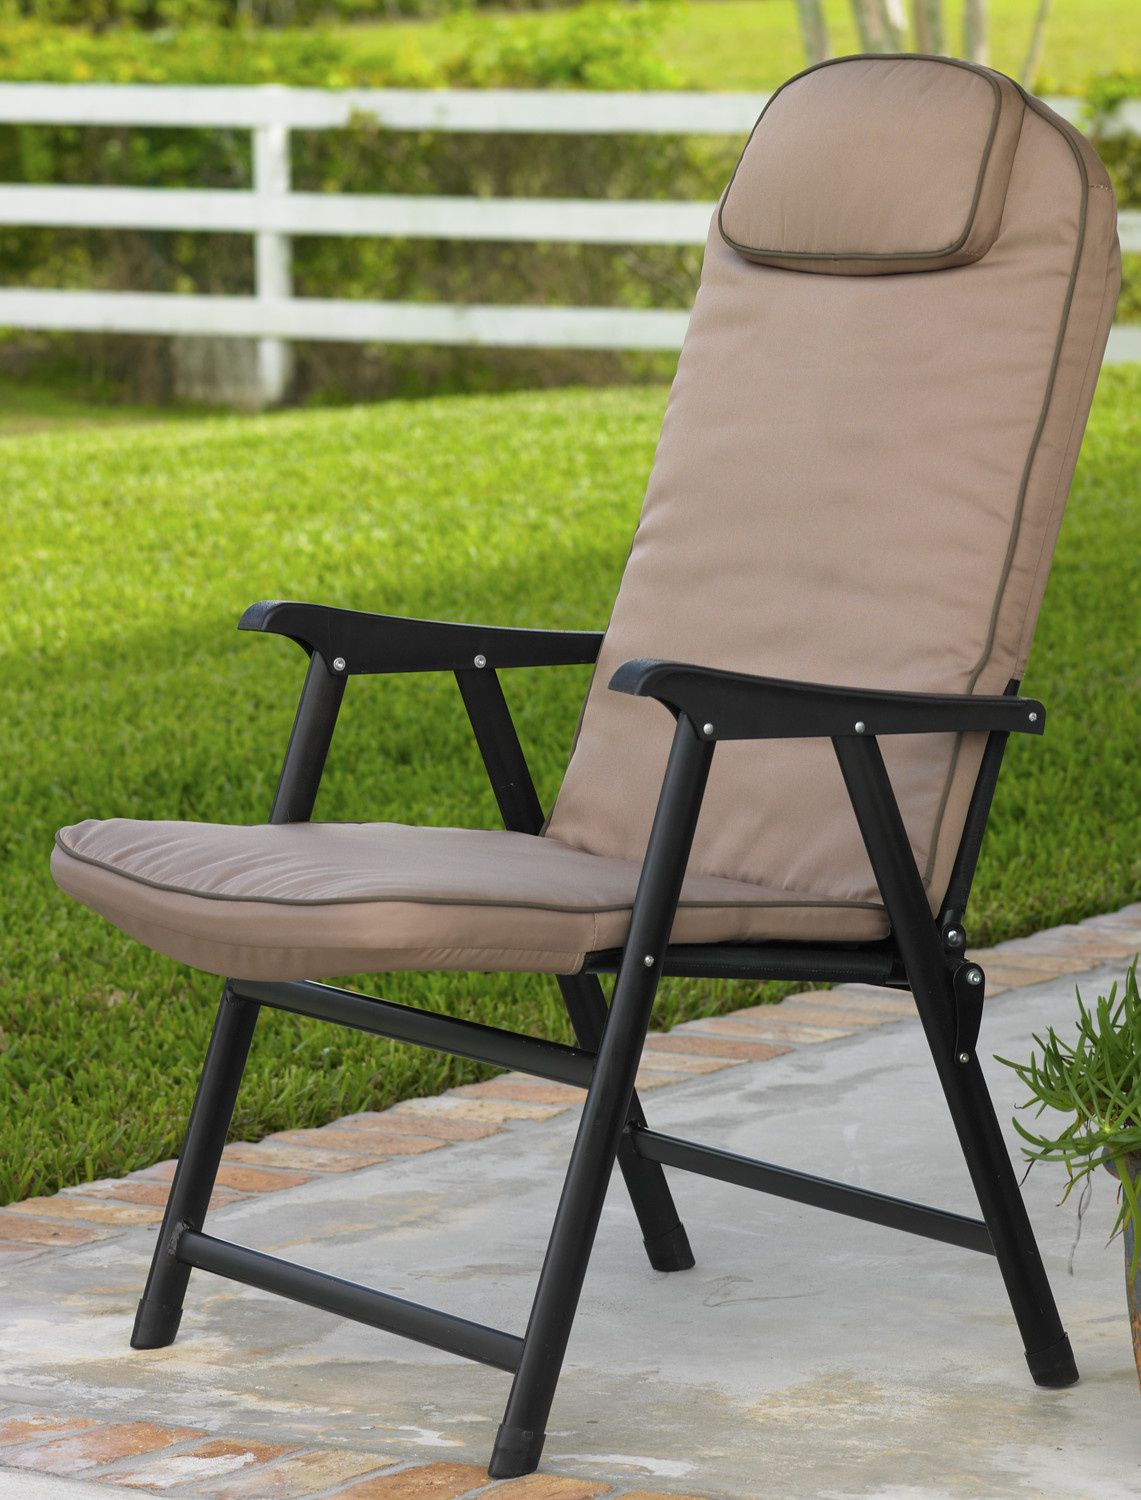 Heavy Duty Outdoor Chairs Pin By Annora On Home Interior Outdoor Folding Chairs Padded